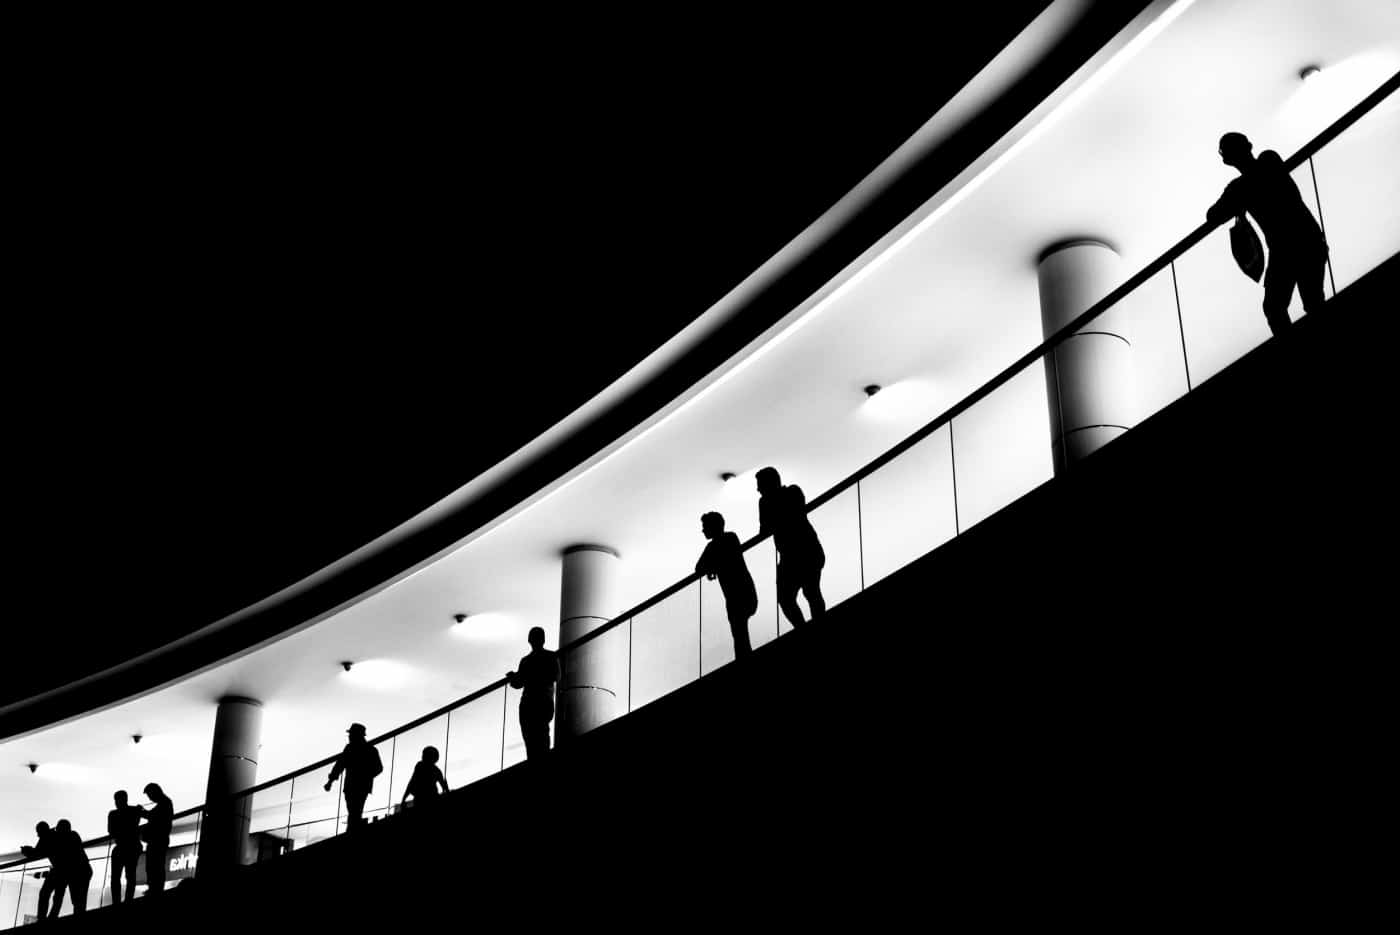 Alan Schaller street photography